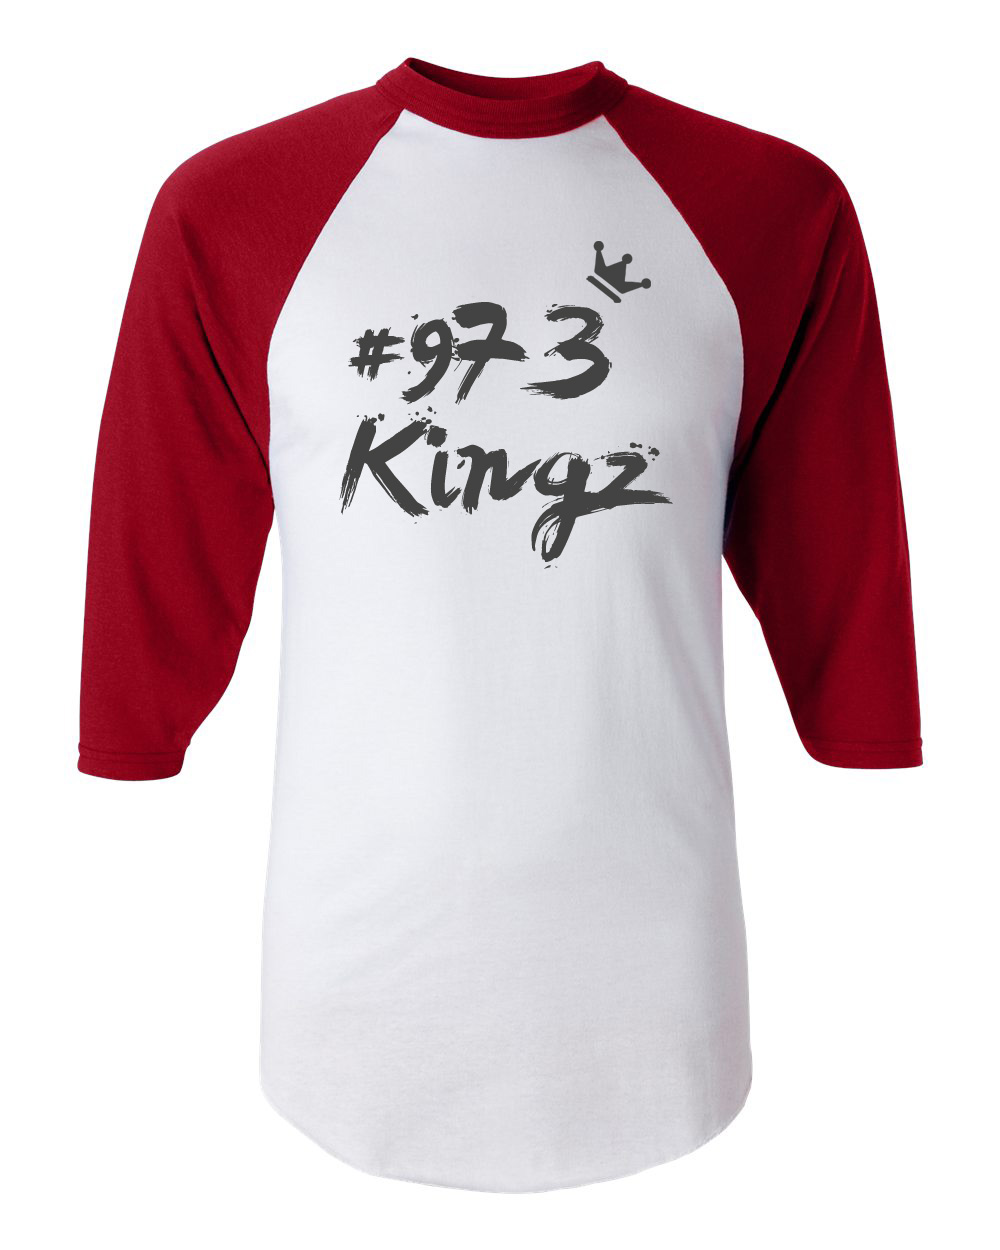 973 Kingz - Baseball Tee (red, white, black)